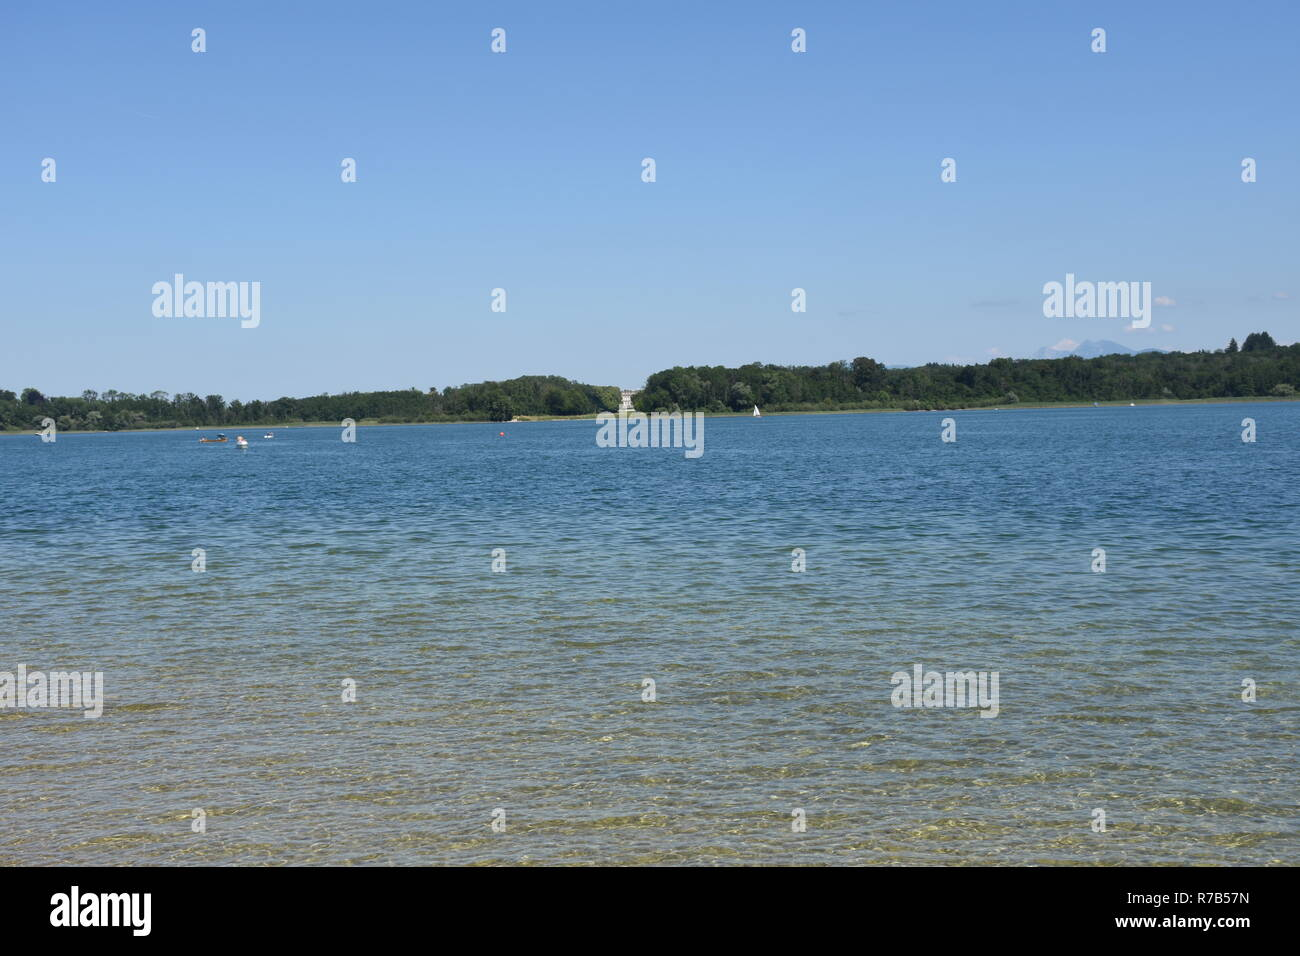 chiemsee,prien,jetty,jetty,path,wharf,wood,lake,chiemgau,herreninsel,fraueninsel,chiemgau alps,alpine foothills,wilder kaiser,rosenheim,loferer steinberge,water,boat,island,sailboat,sailing,beach,shore,bathing beach ,lighting,fr - Stock Image